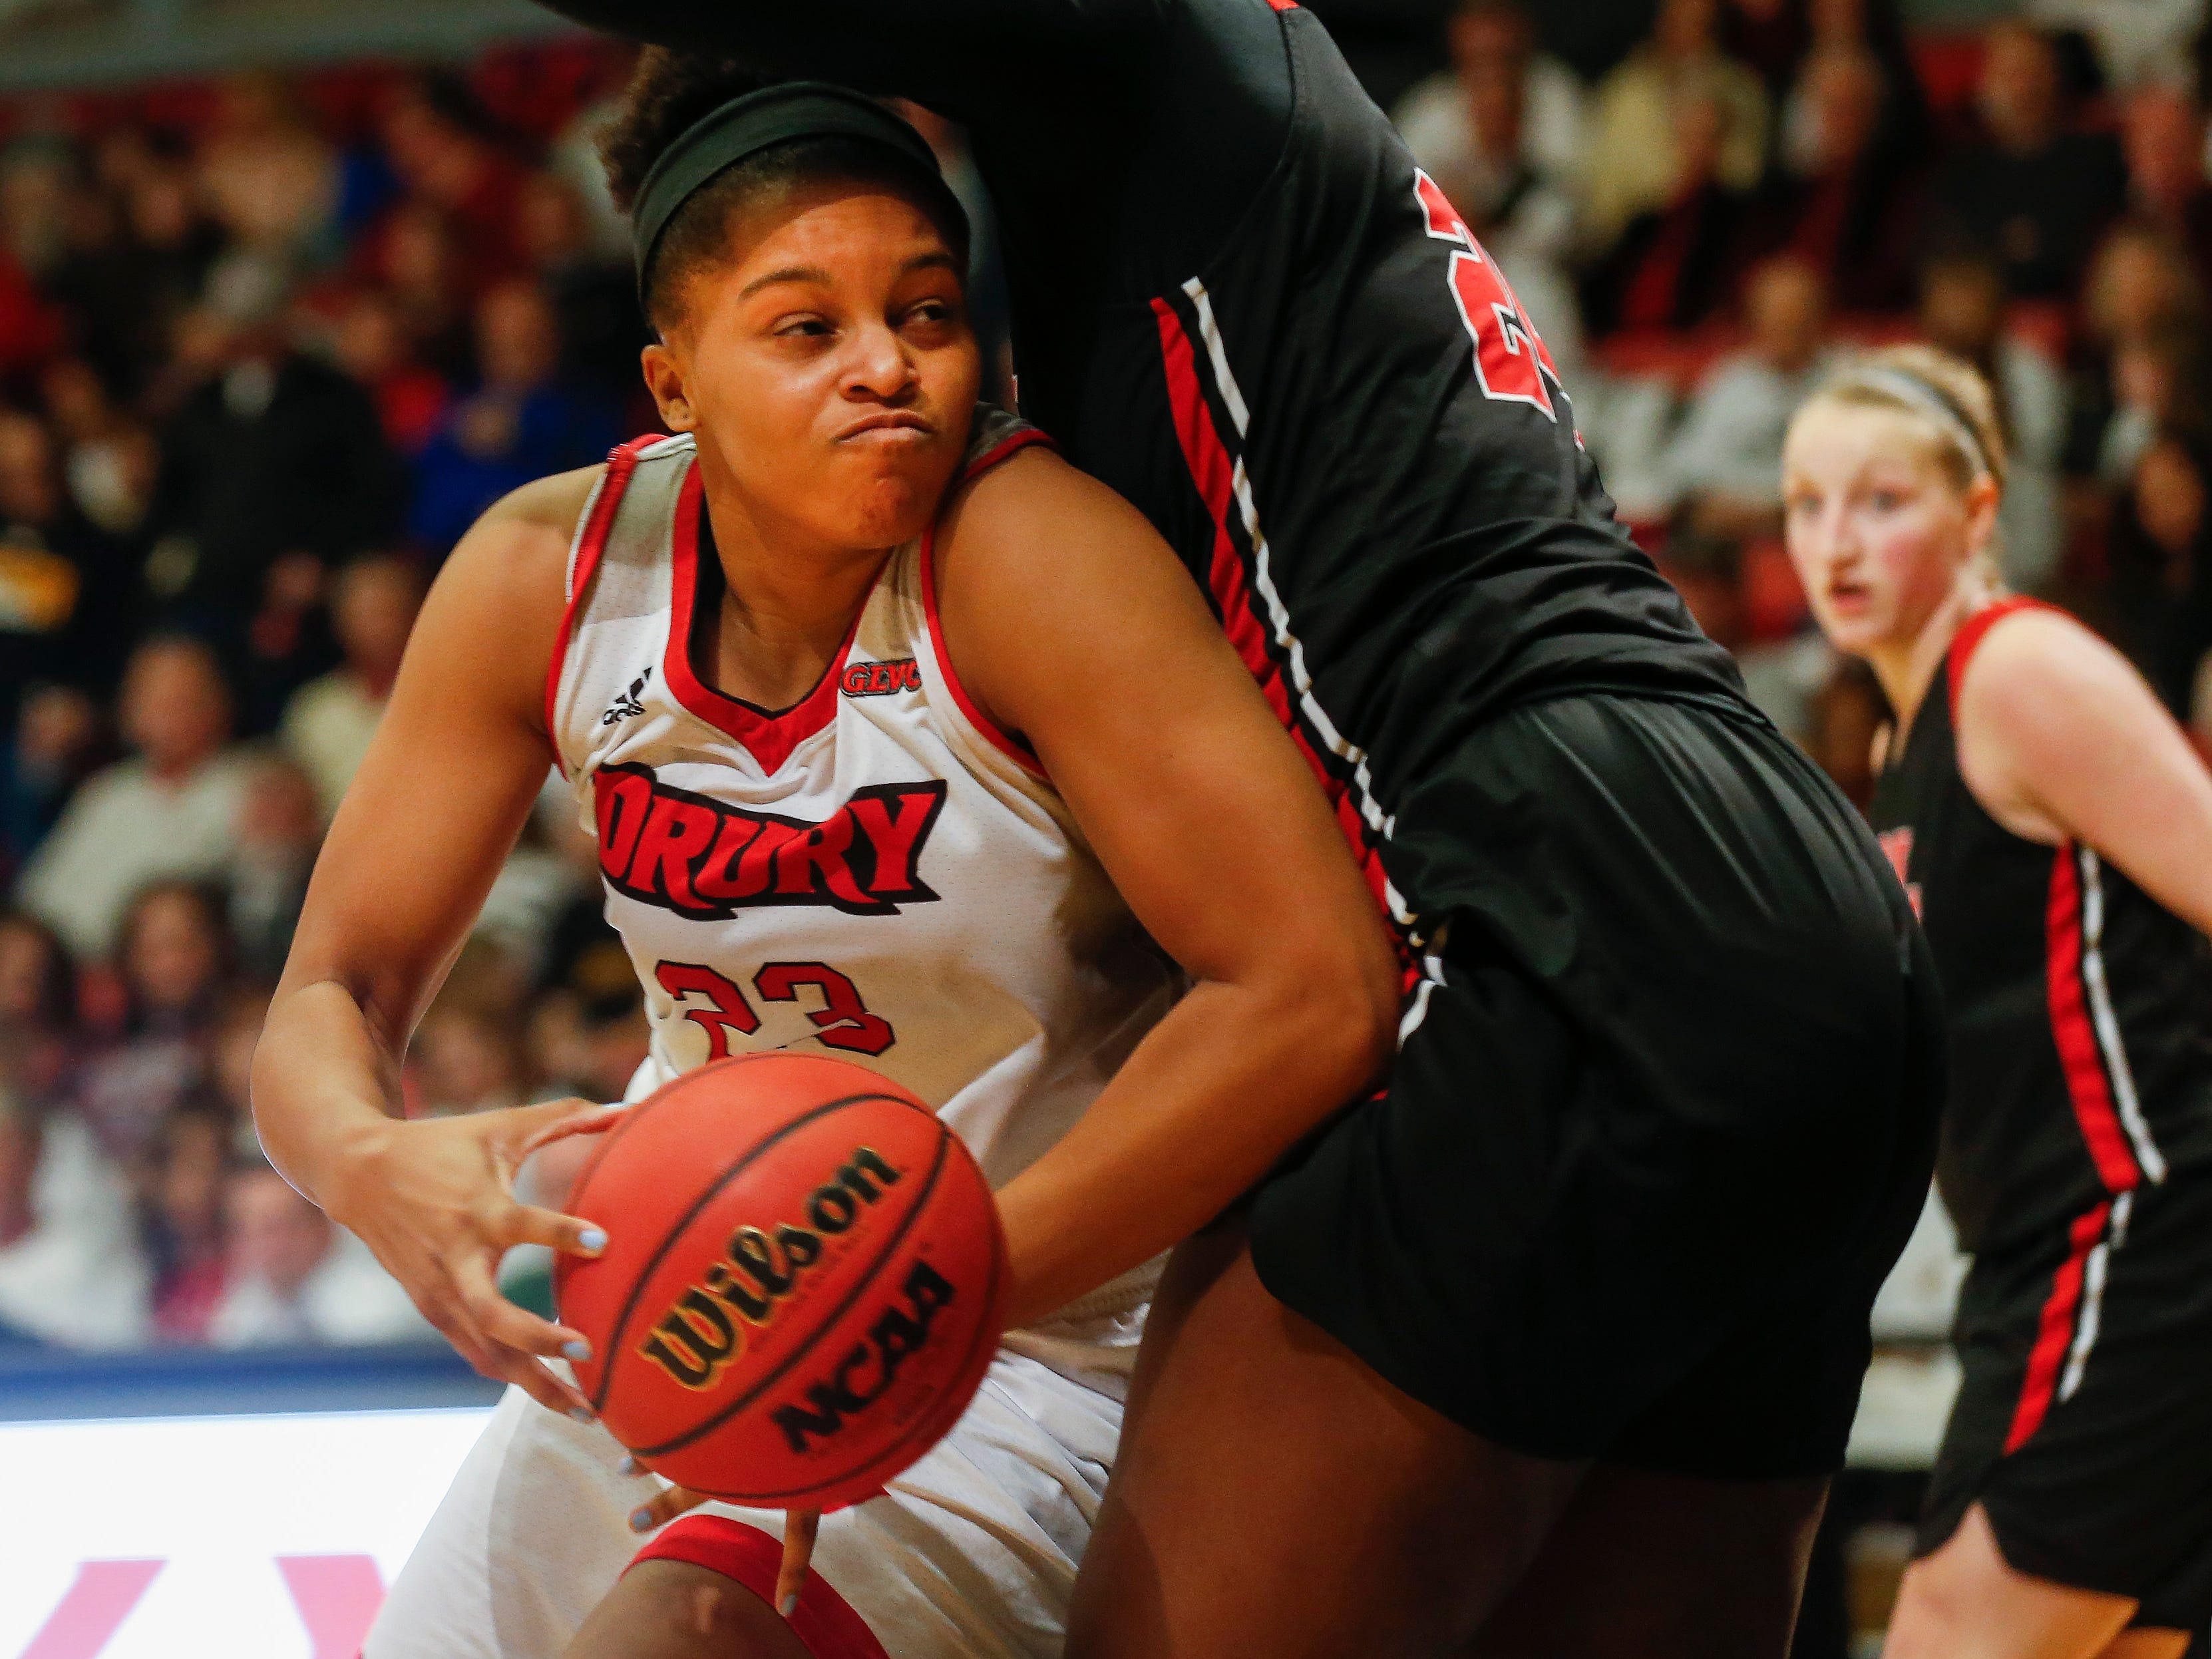 Azia Lynch, of Drury, moves around a defender during the Lady Panthers' 77-44 win over the University of Missouri St. Louis Tritons during the Overflow the O game at the O'Reilly Family Event Center on Saturday, Feb. 9, 2019.